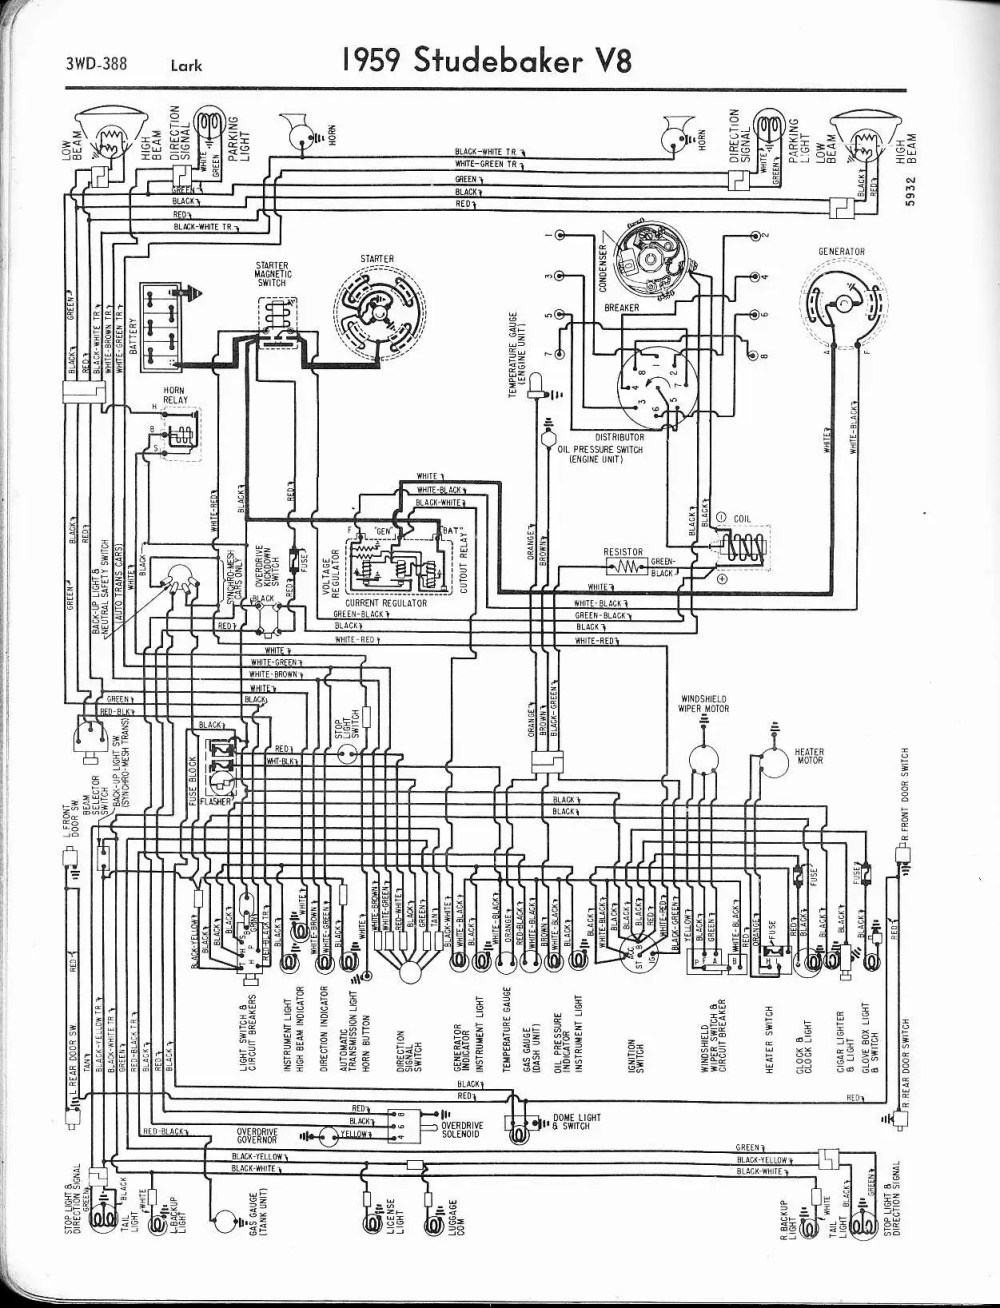 medium resolution of studebaker wiring diagrams the old car manual project wiring diagram for 1962 studebaker 6 lark